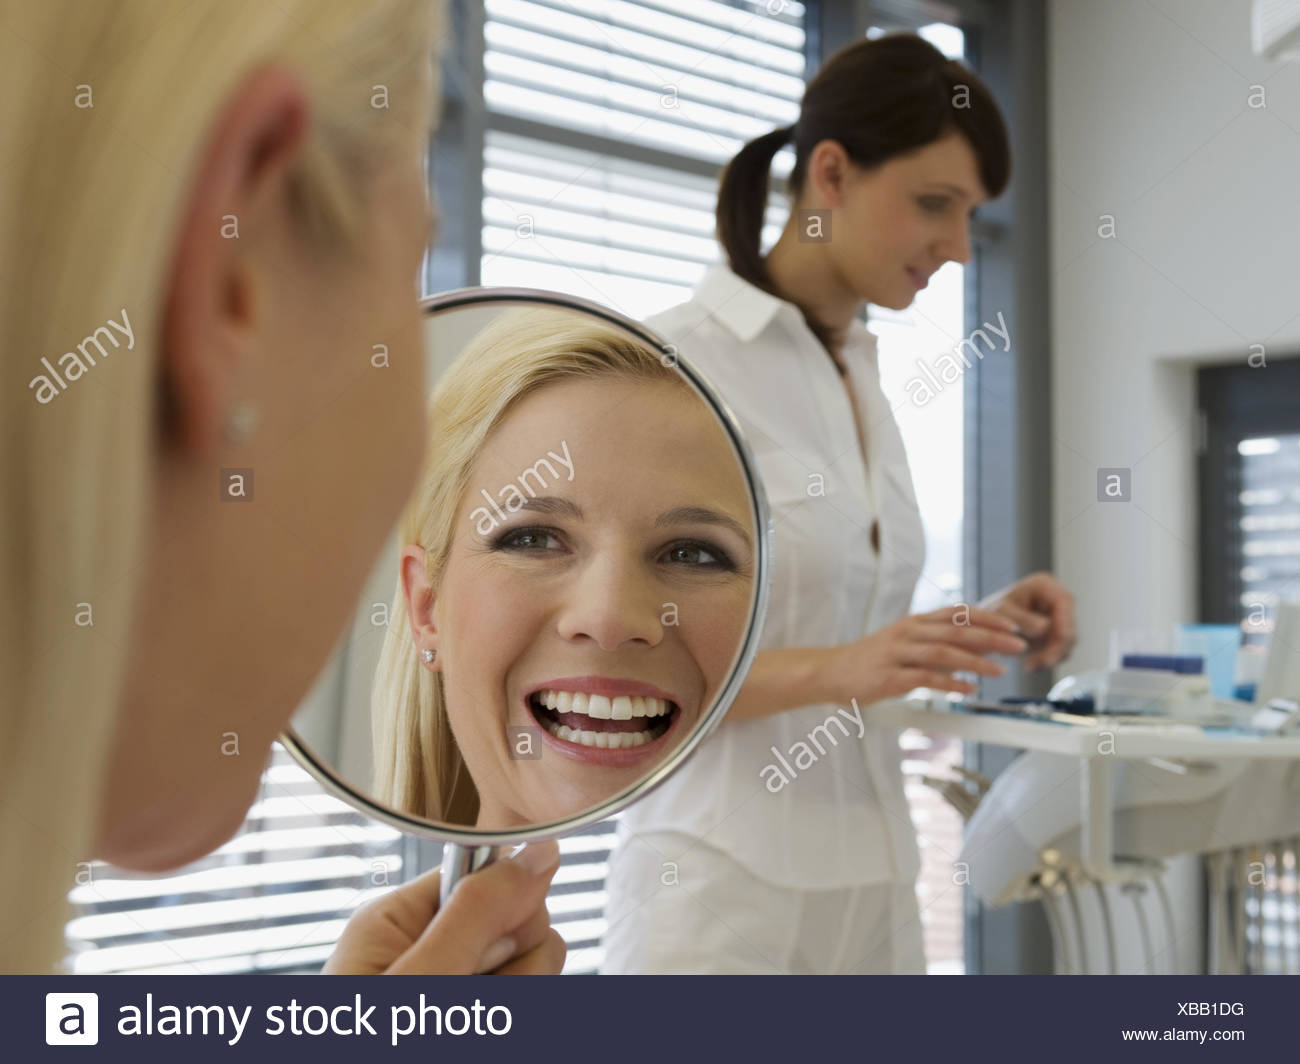 Woman admiring smile in dentist's office - Stock Image